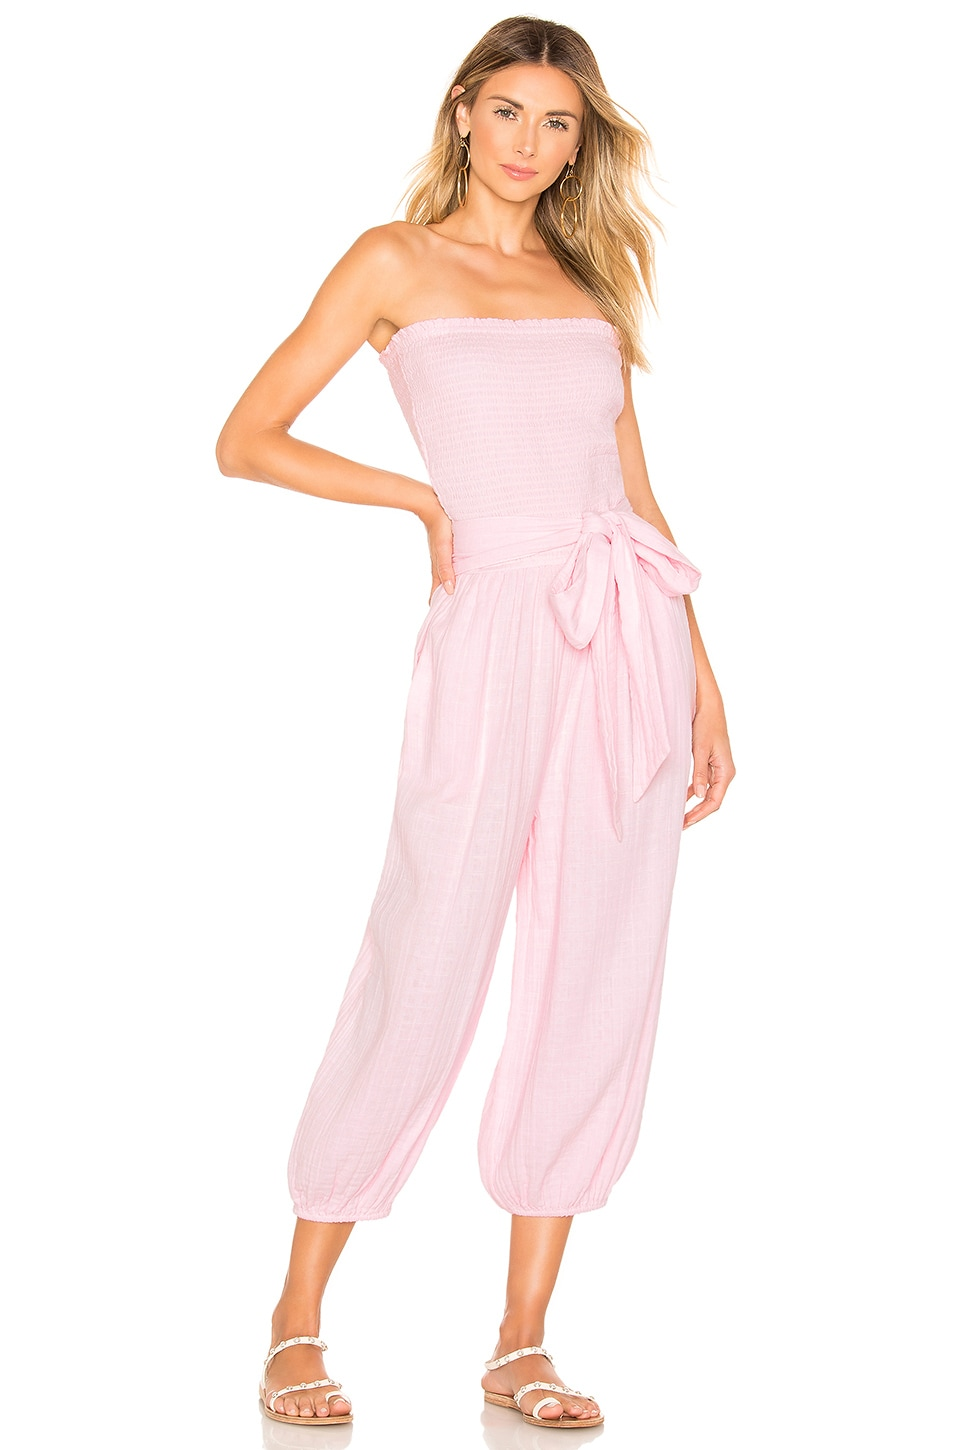 ANAAK Kai Smock Jumpsuit in Blossom Pink